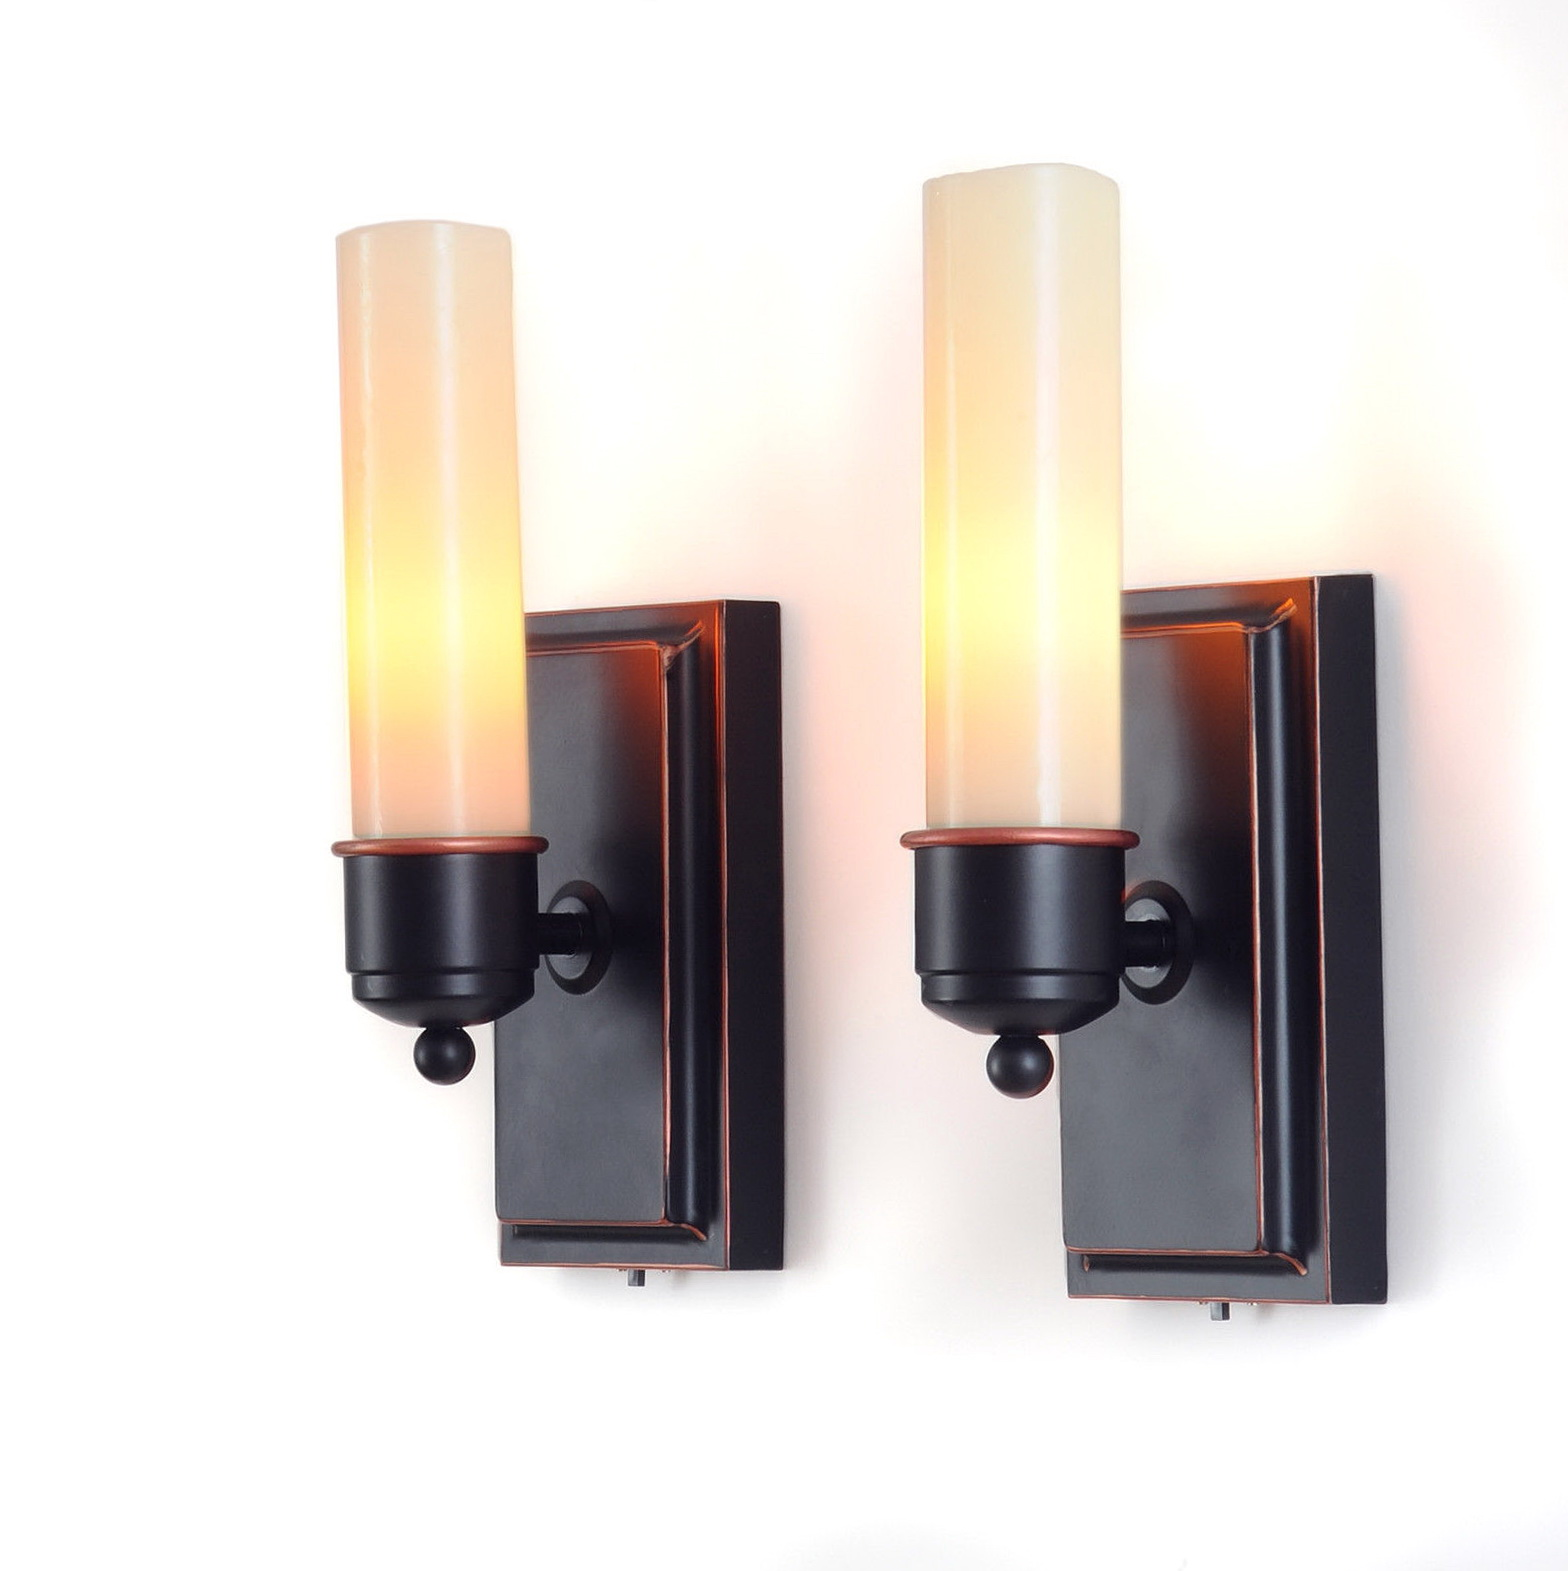 Picture Wall Lights Battery : Change the look of your garden with Wall light battery operated Warisan Lighting